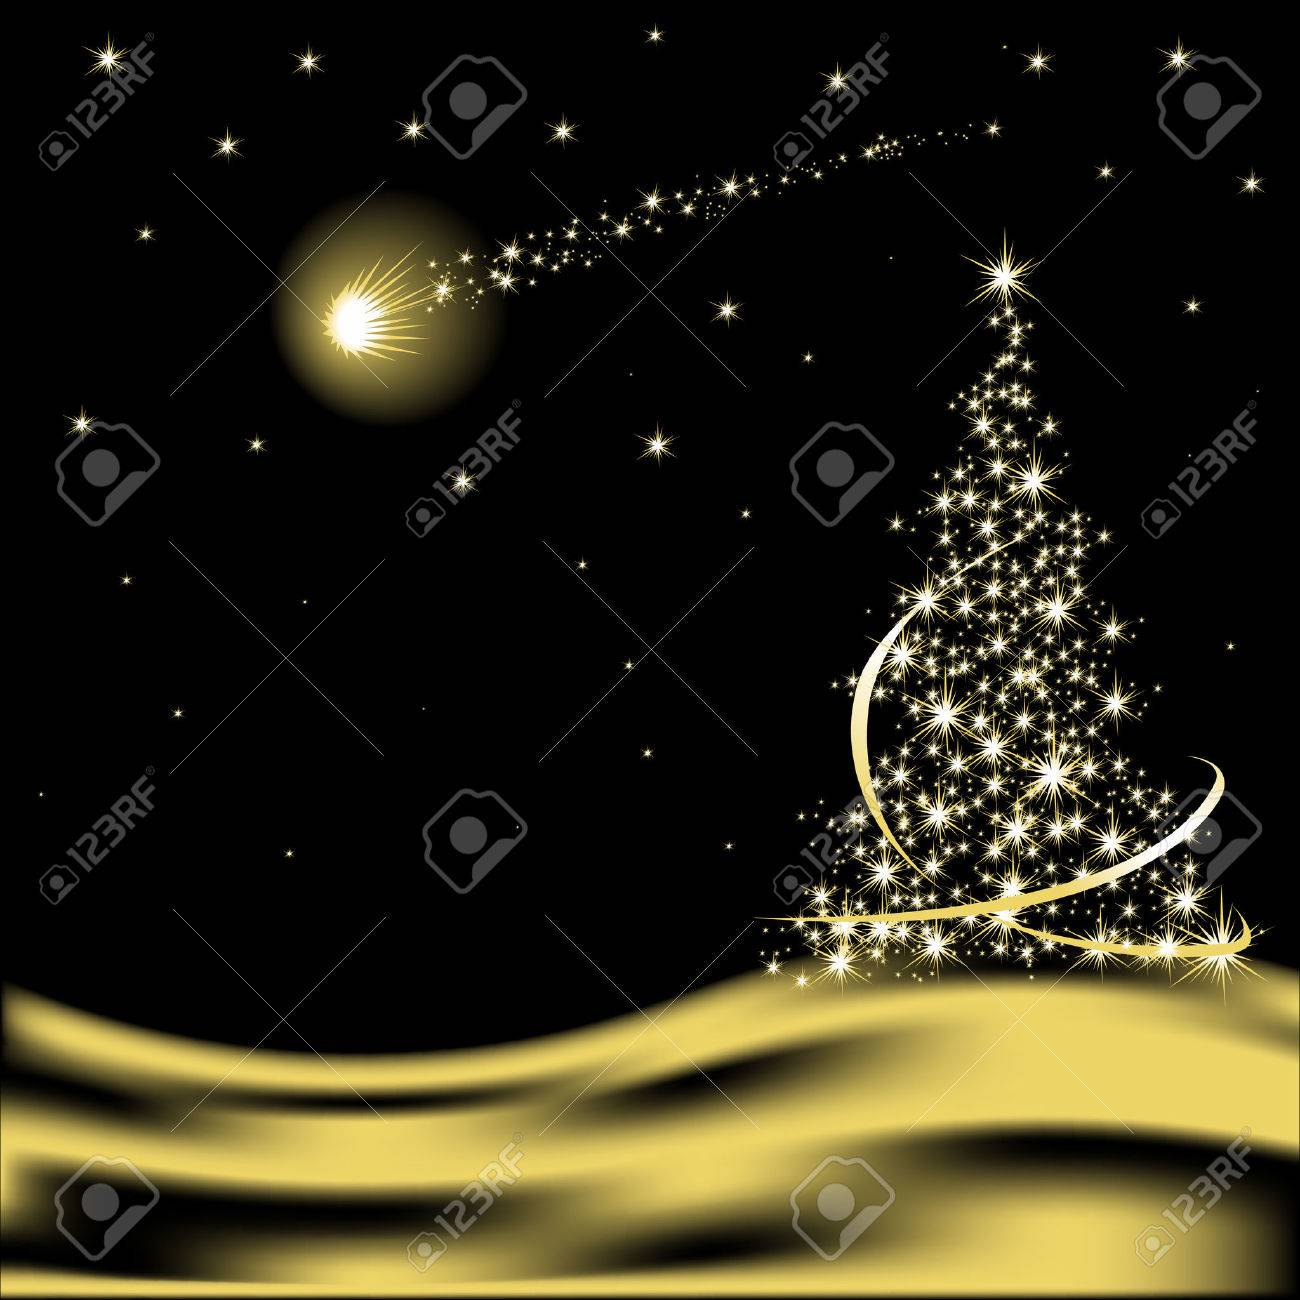 Christmas Tree In The Desert.Vector Christmas Tree With Falling Star In Desert